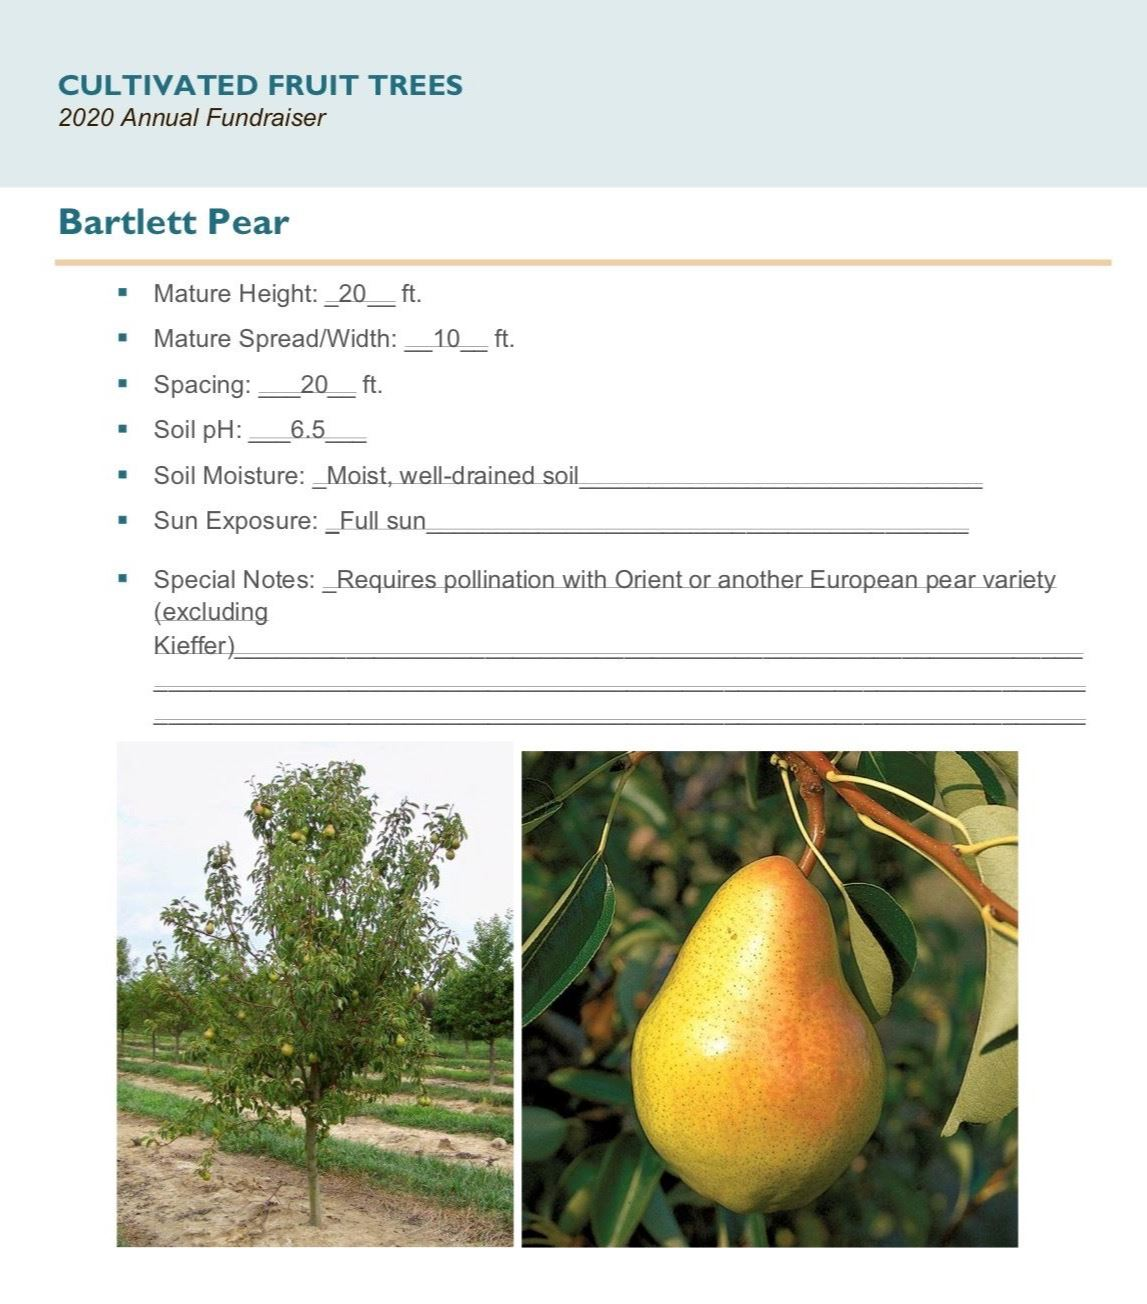 Brochure Template Draft_Cultivated_Fruit_Treespg6